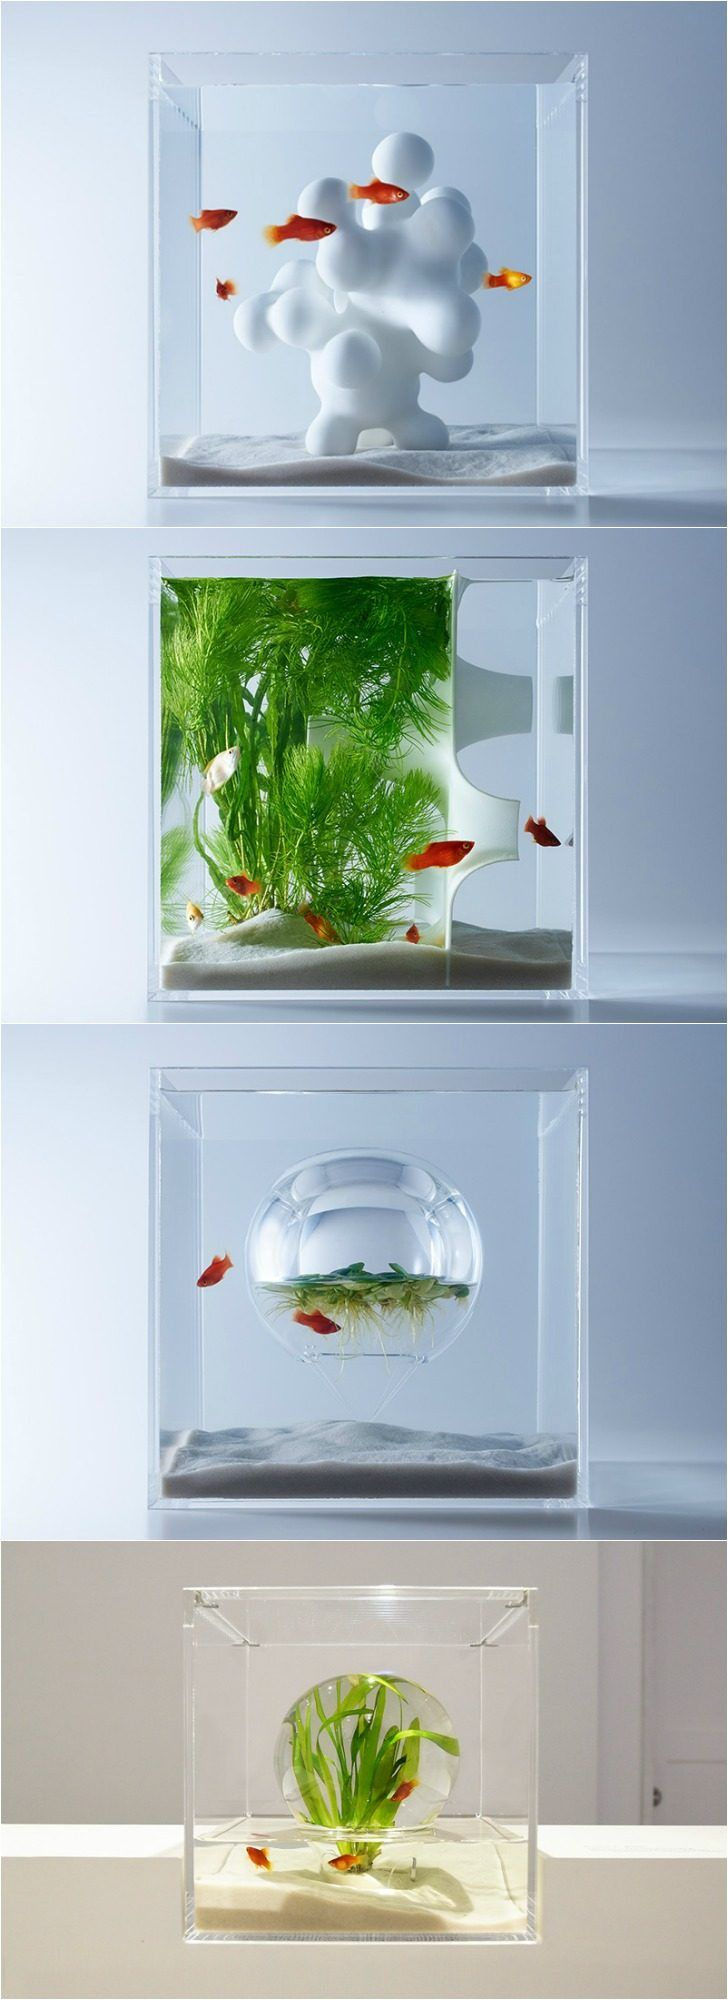 M s de 25 ideas incre bles sobre peceras en pinterest for Tanques para peces